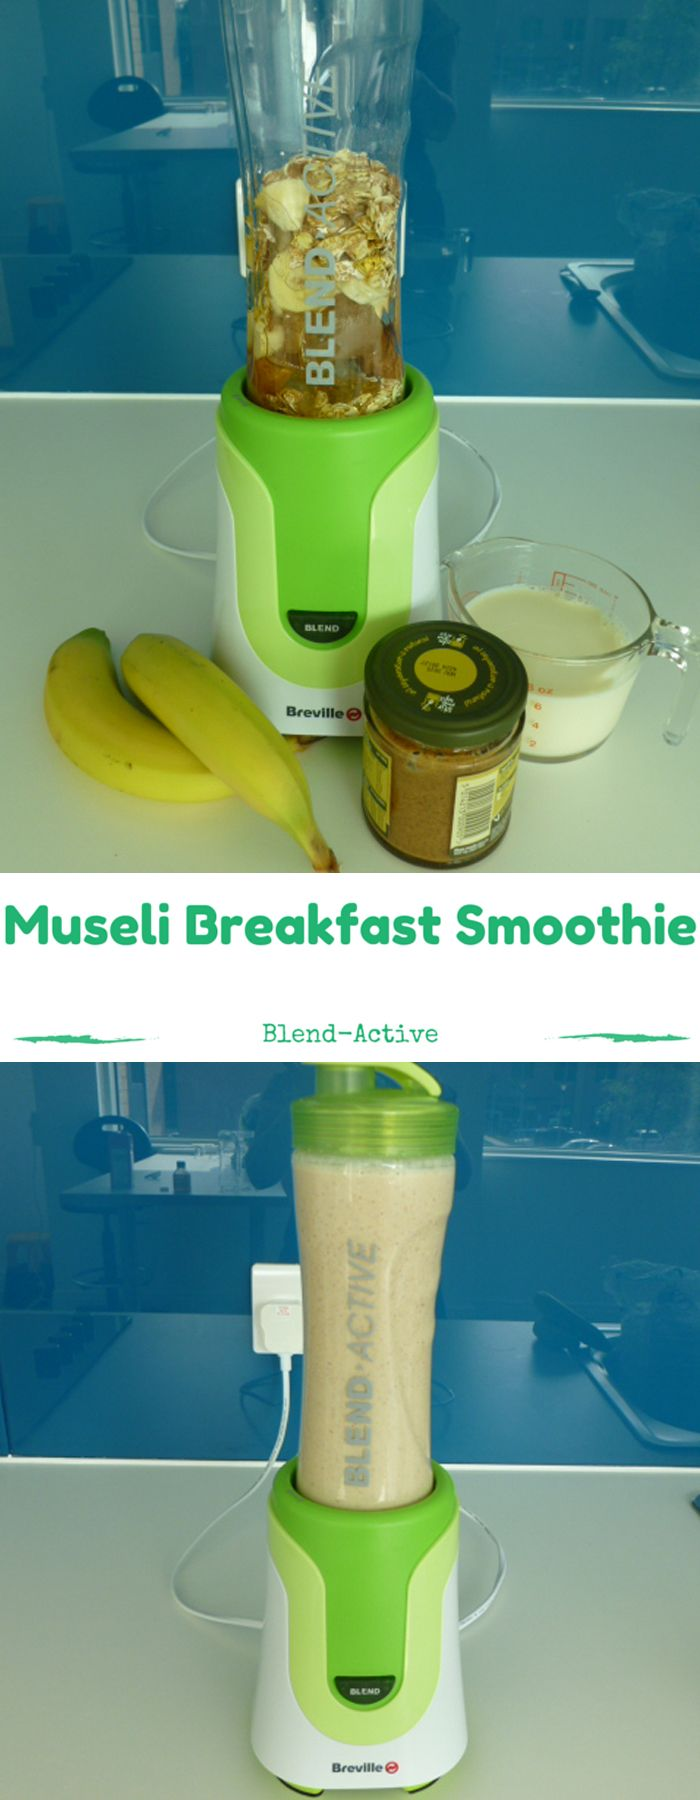 Blend-Active Museli Breakfast Smoothie recipe   http://www.turnonyourcreativity.com/recipes/museli-breakfast-smoothie-with-peanut-butter-and-soy-milk